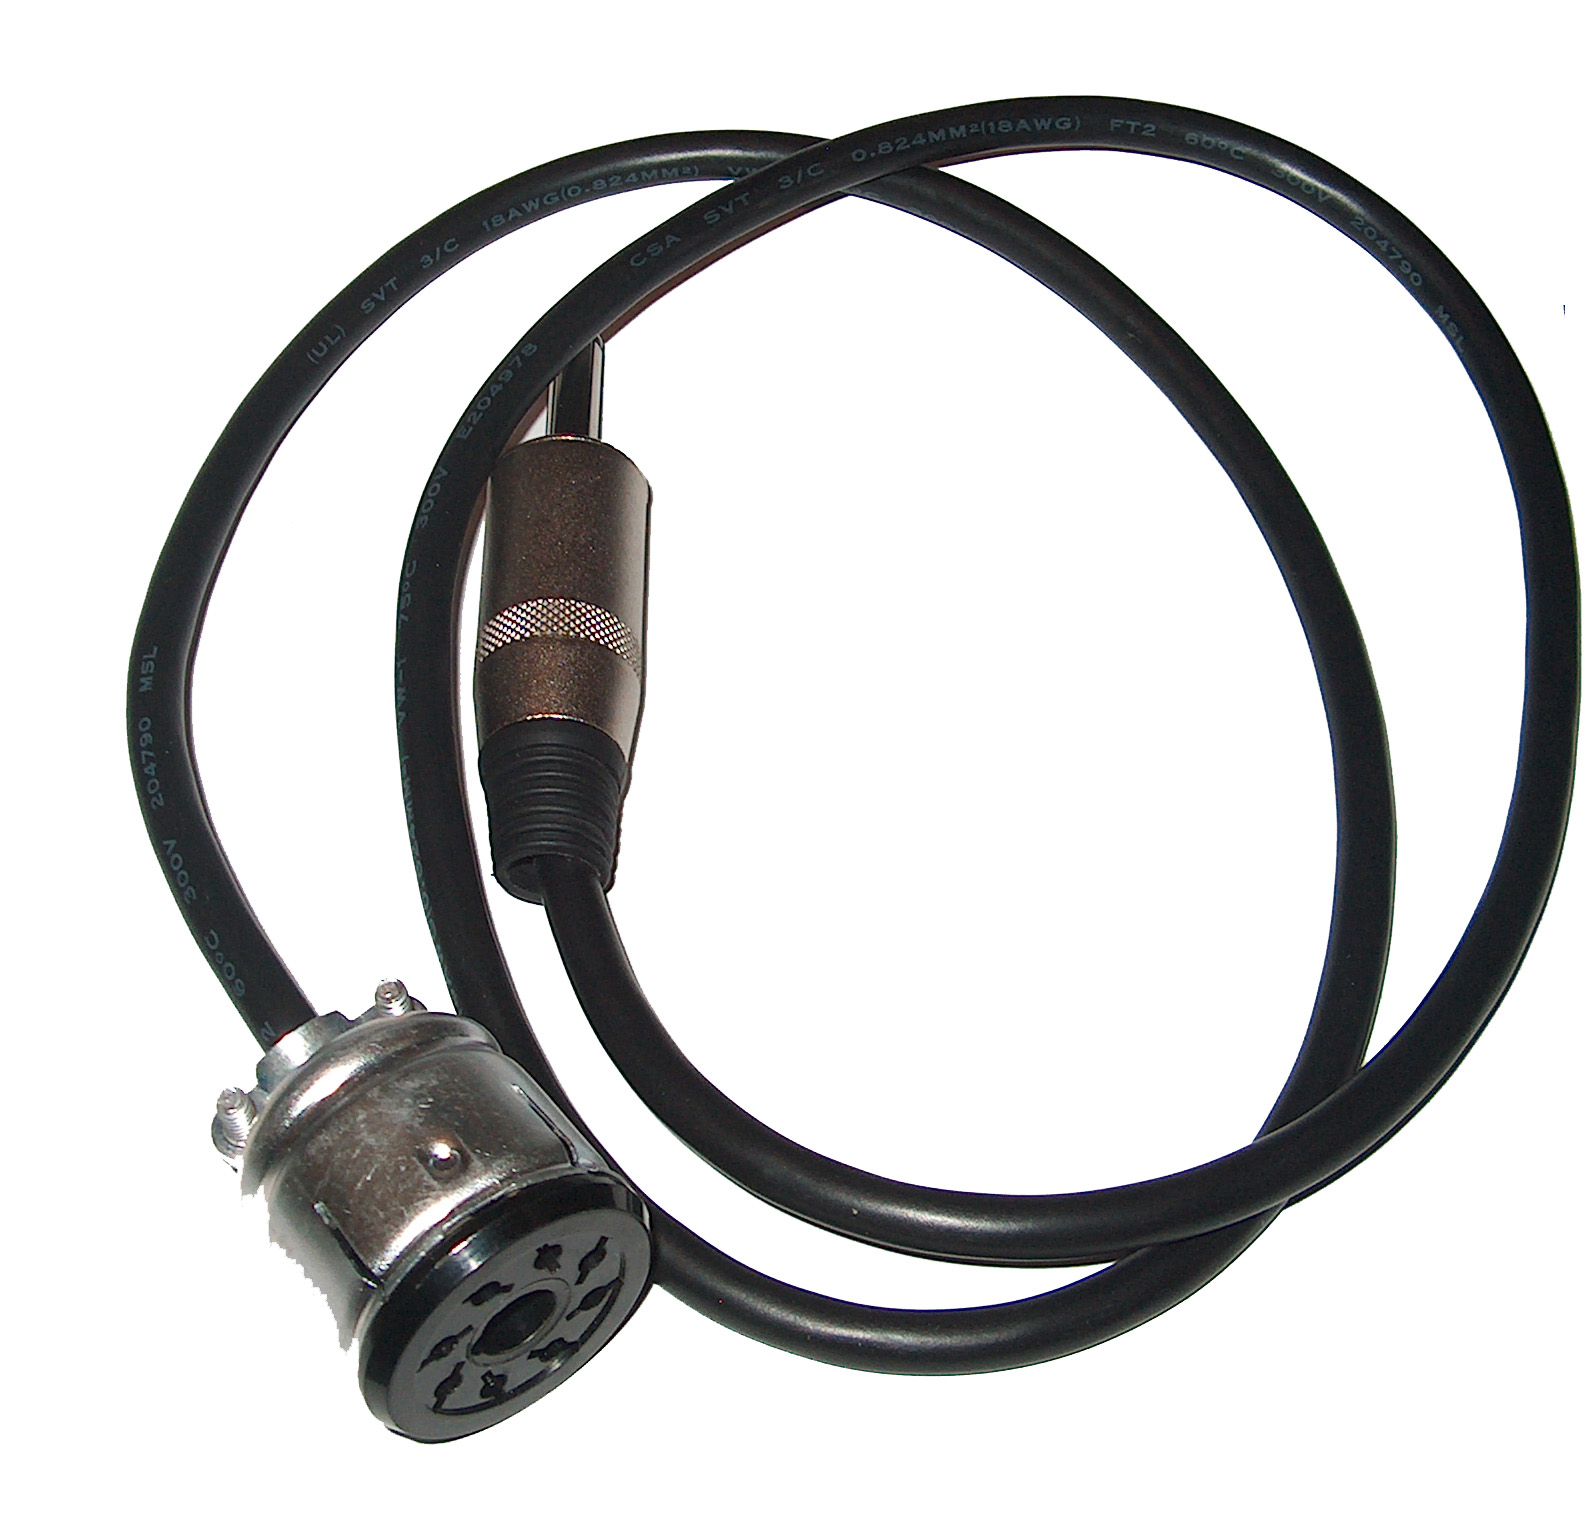 Ampenol to 1/4` conversion cable.